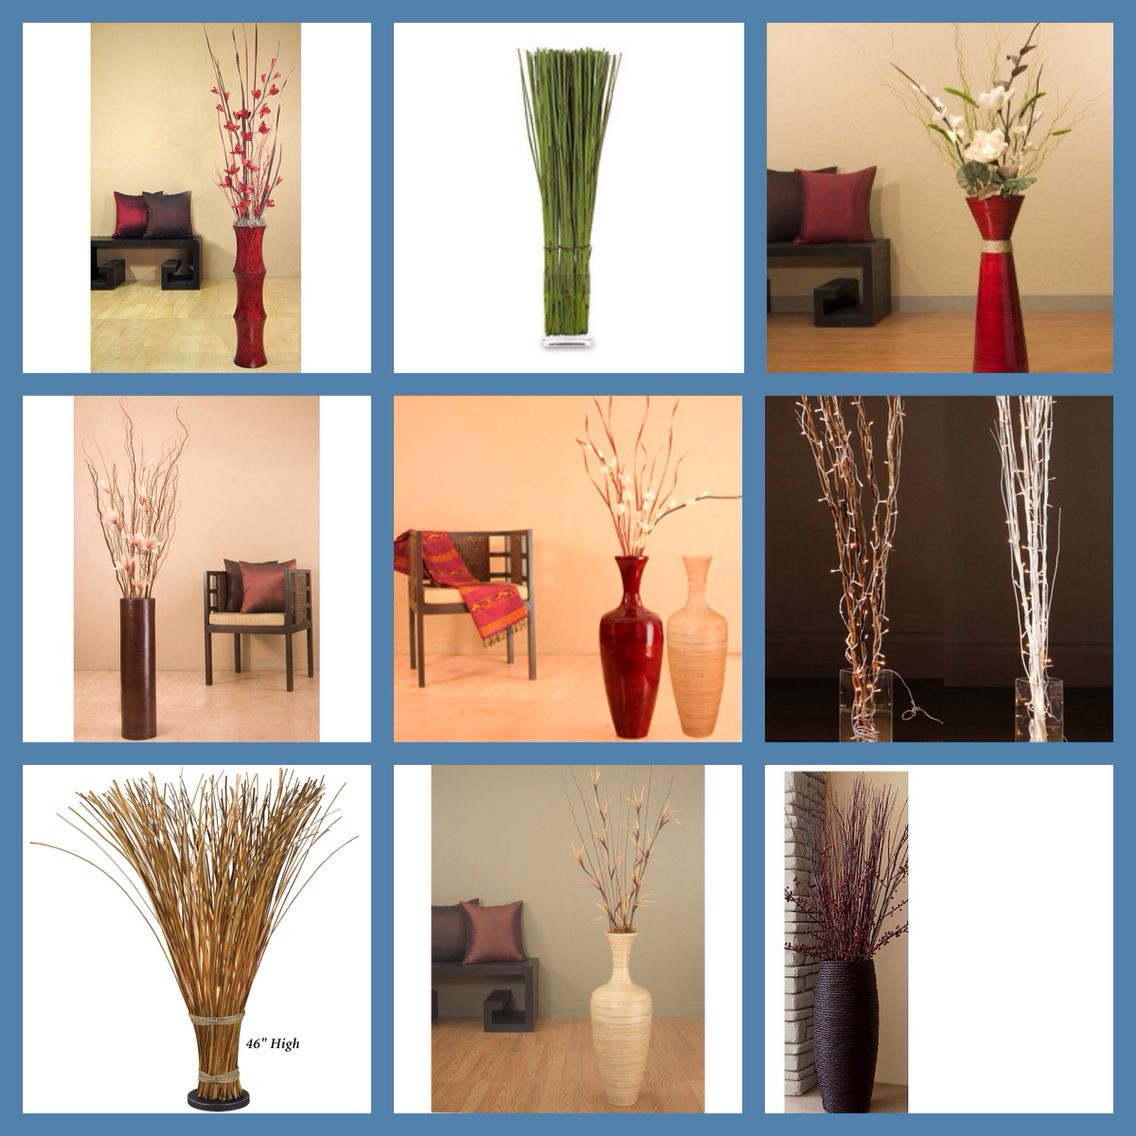 large mirror floor vase of reeds tall flowers to put in the floor vase wish list pertaining to reeds tall flowers to put in the floor vase the floor home projects